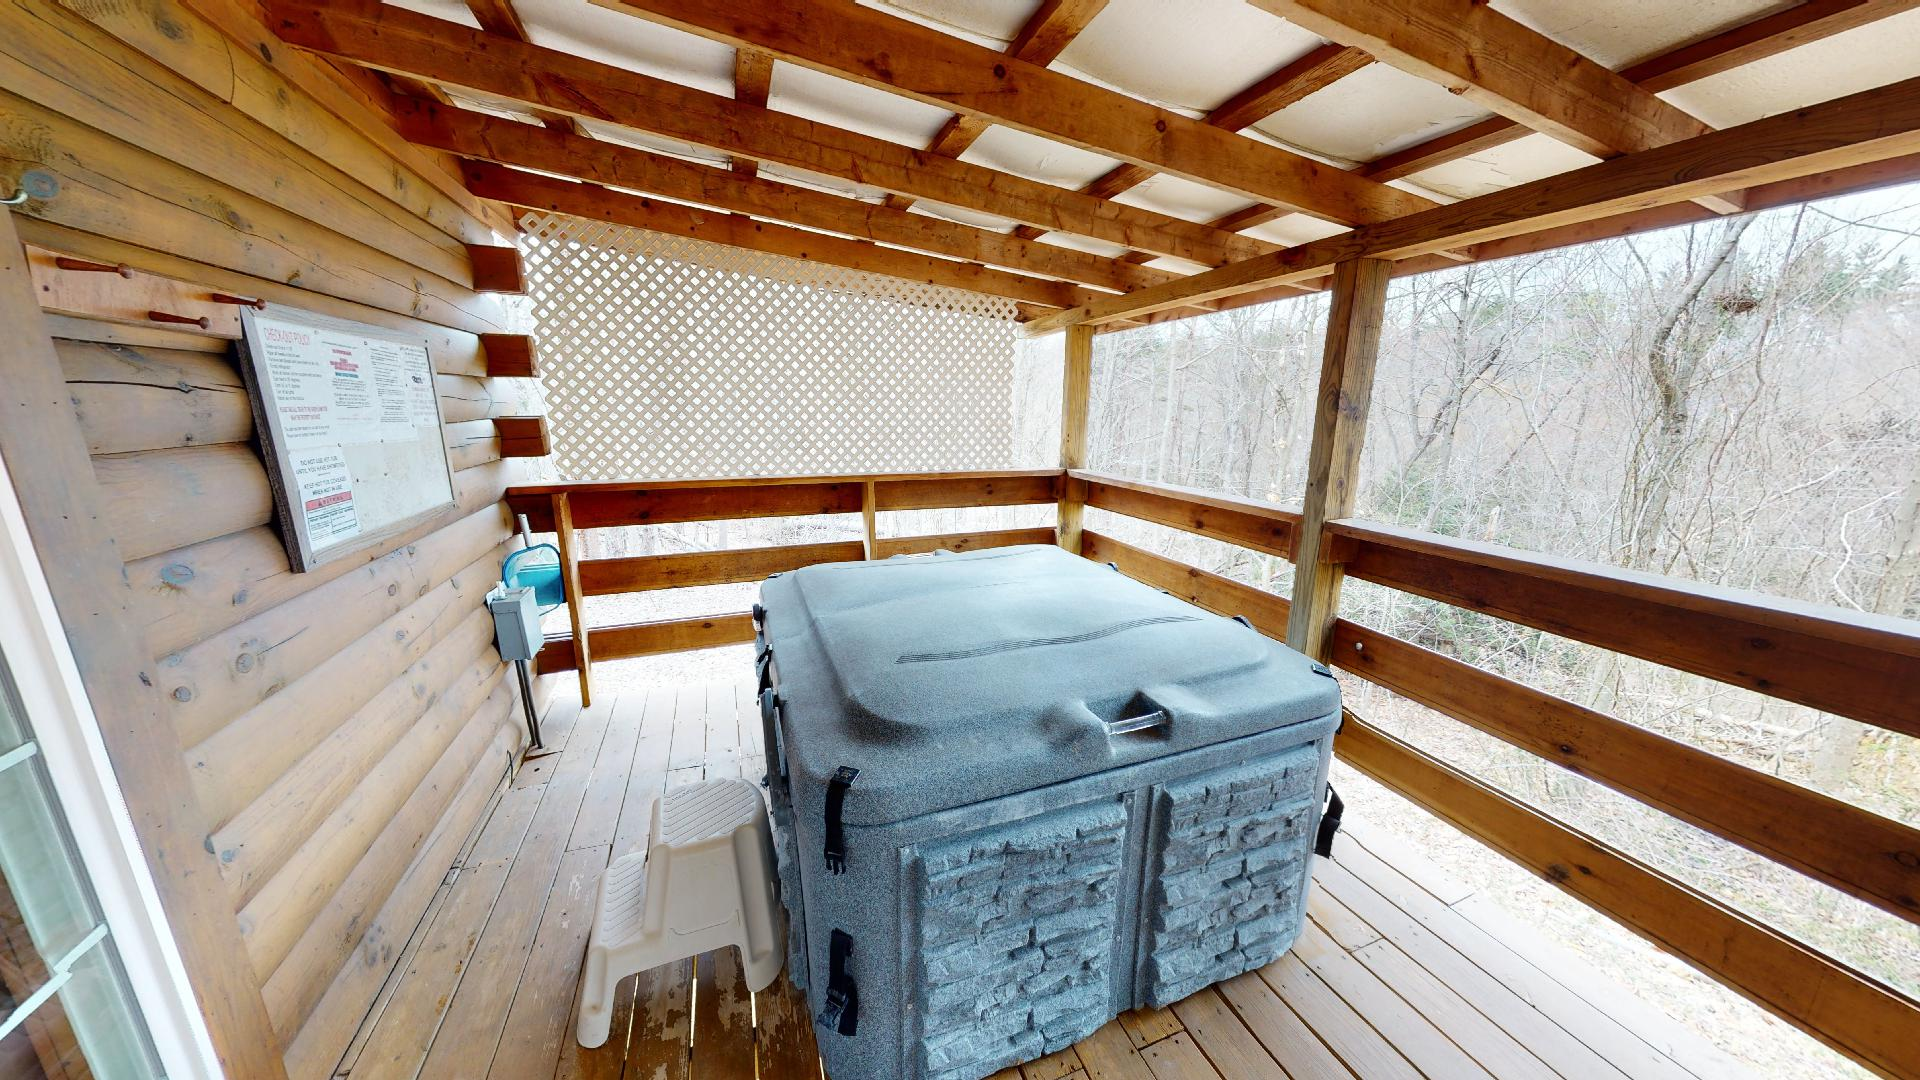 Photo 663_9189.jpg - Private, 2 person hot tub on the back deck.